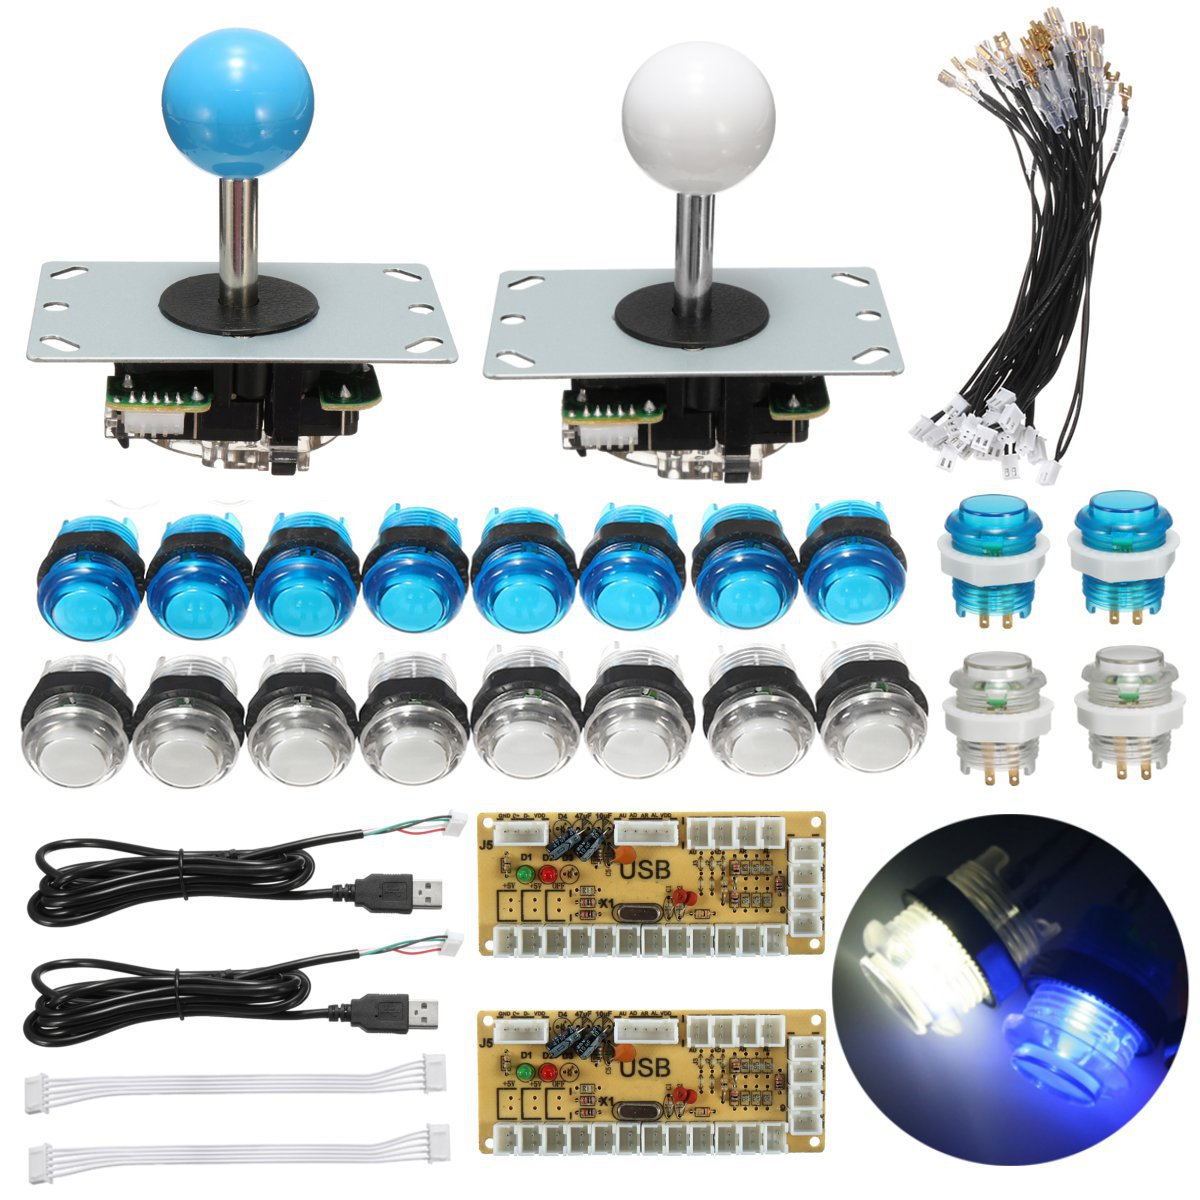 Zero Delay Joystick Arcade DIY Kit LED Push Button+Joystick+USB Encoder+Wire Harness USB Controller For Arcade Mame Arcade Game(China)